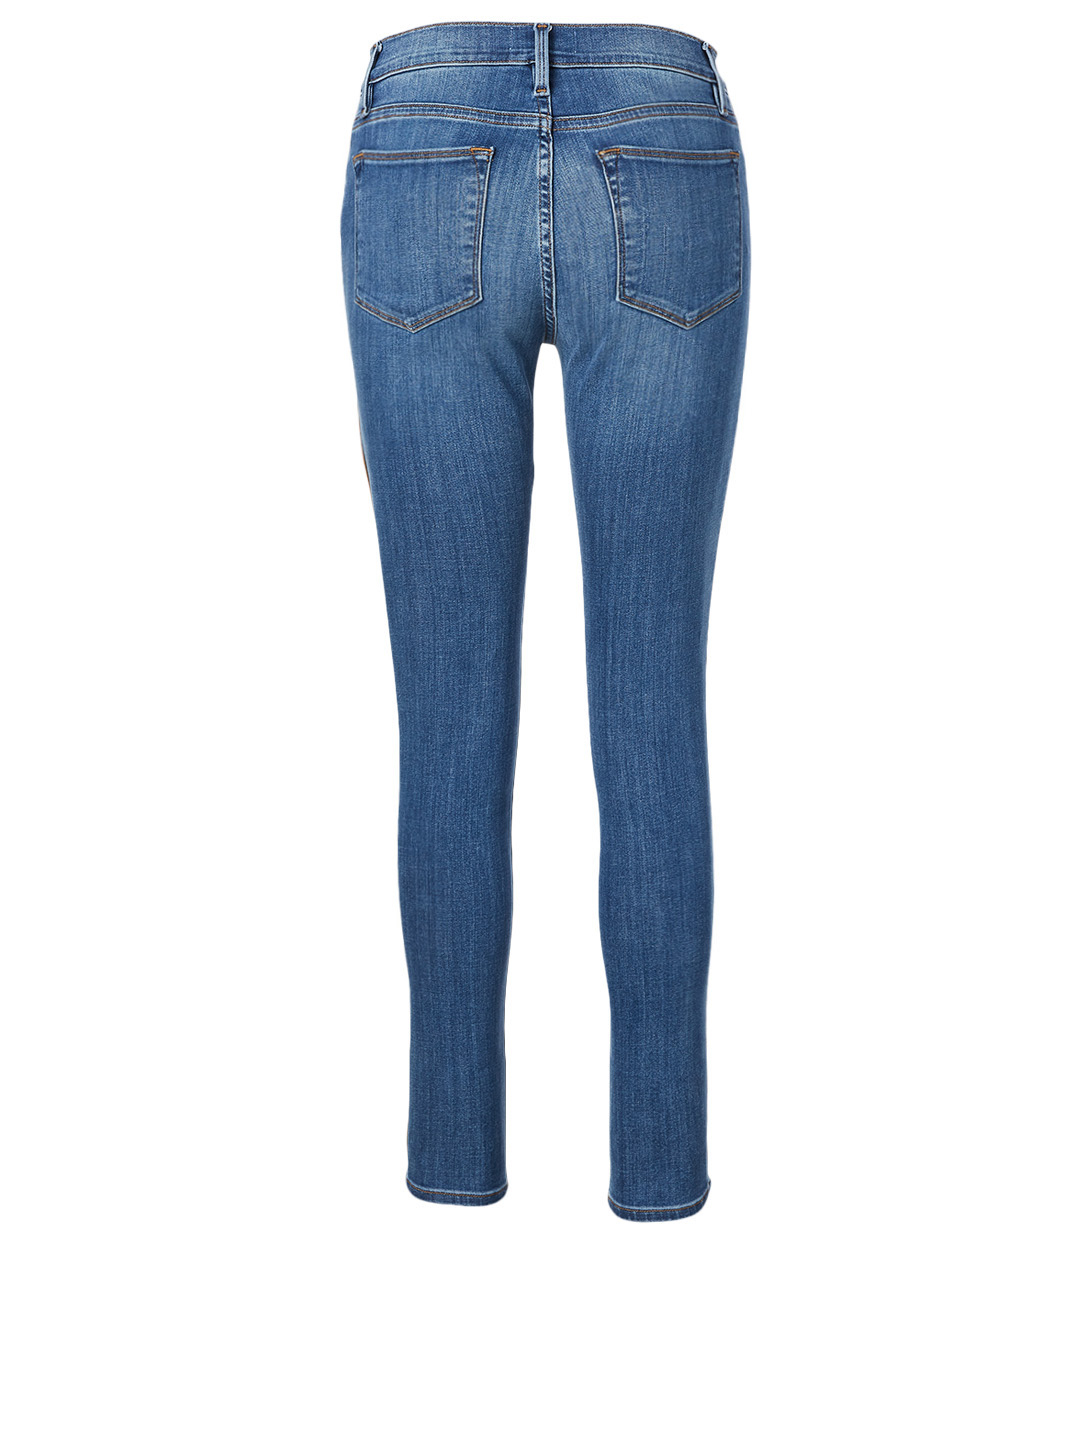 FRAME Le High Skinny Jeans With Piping Women's Blue